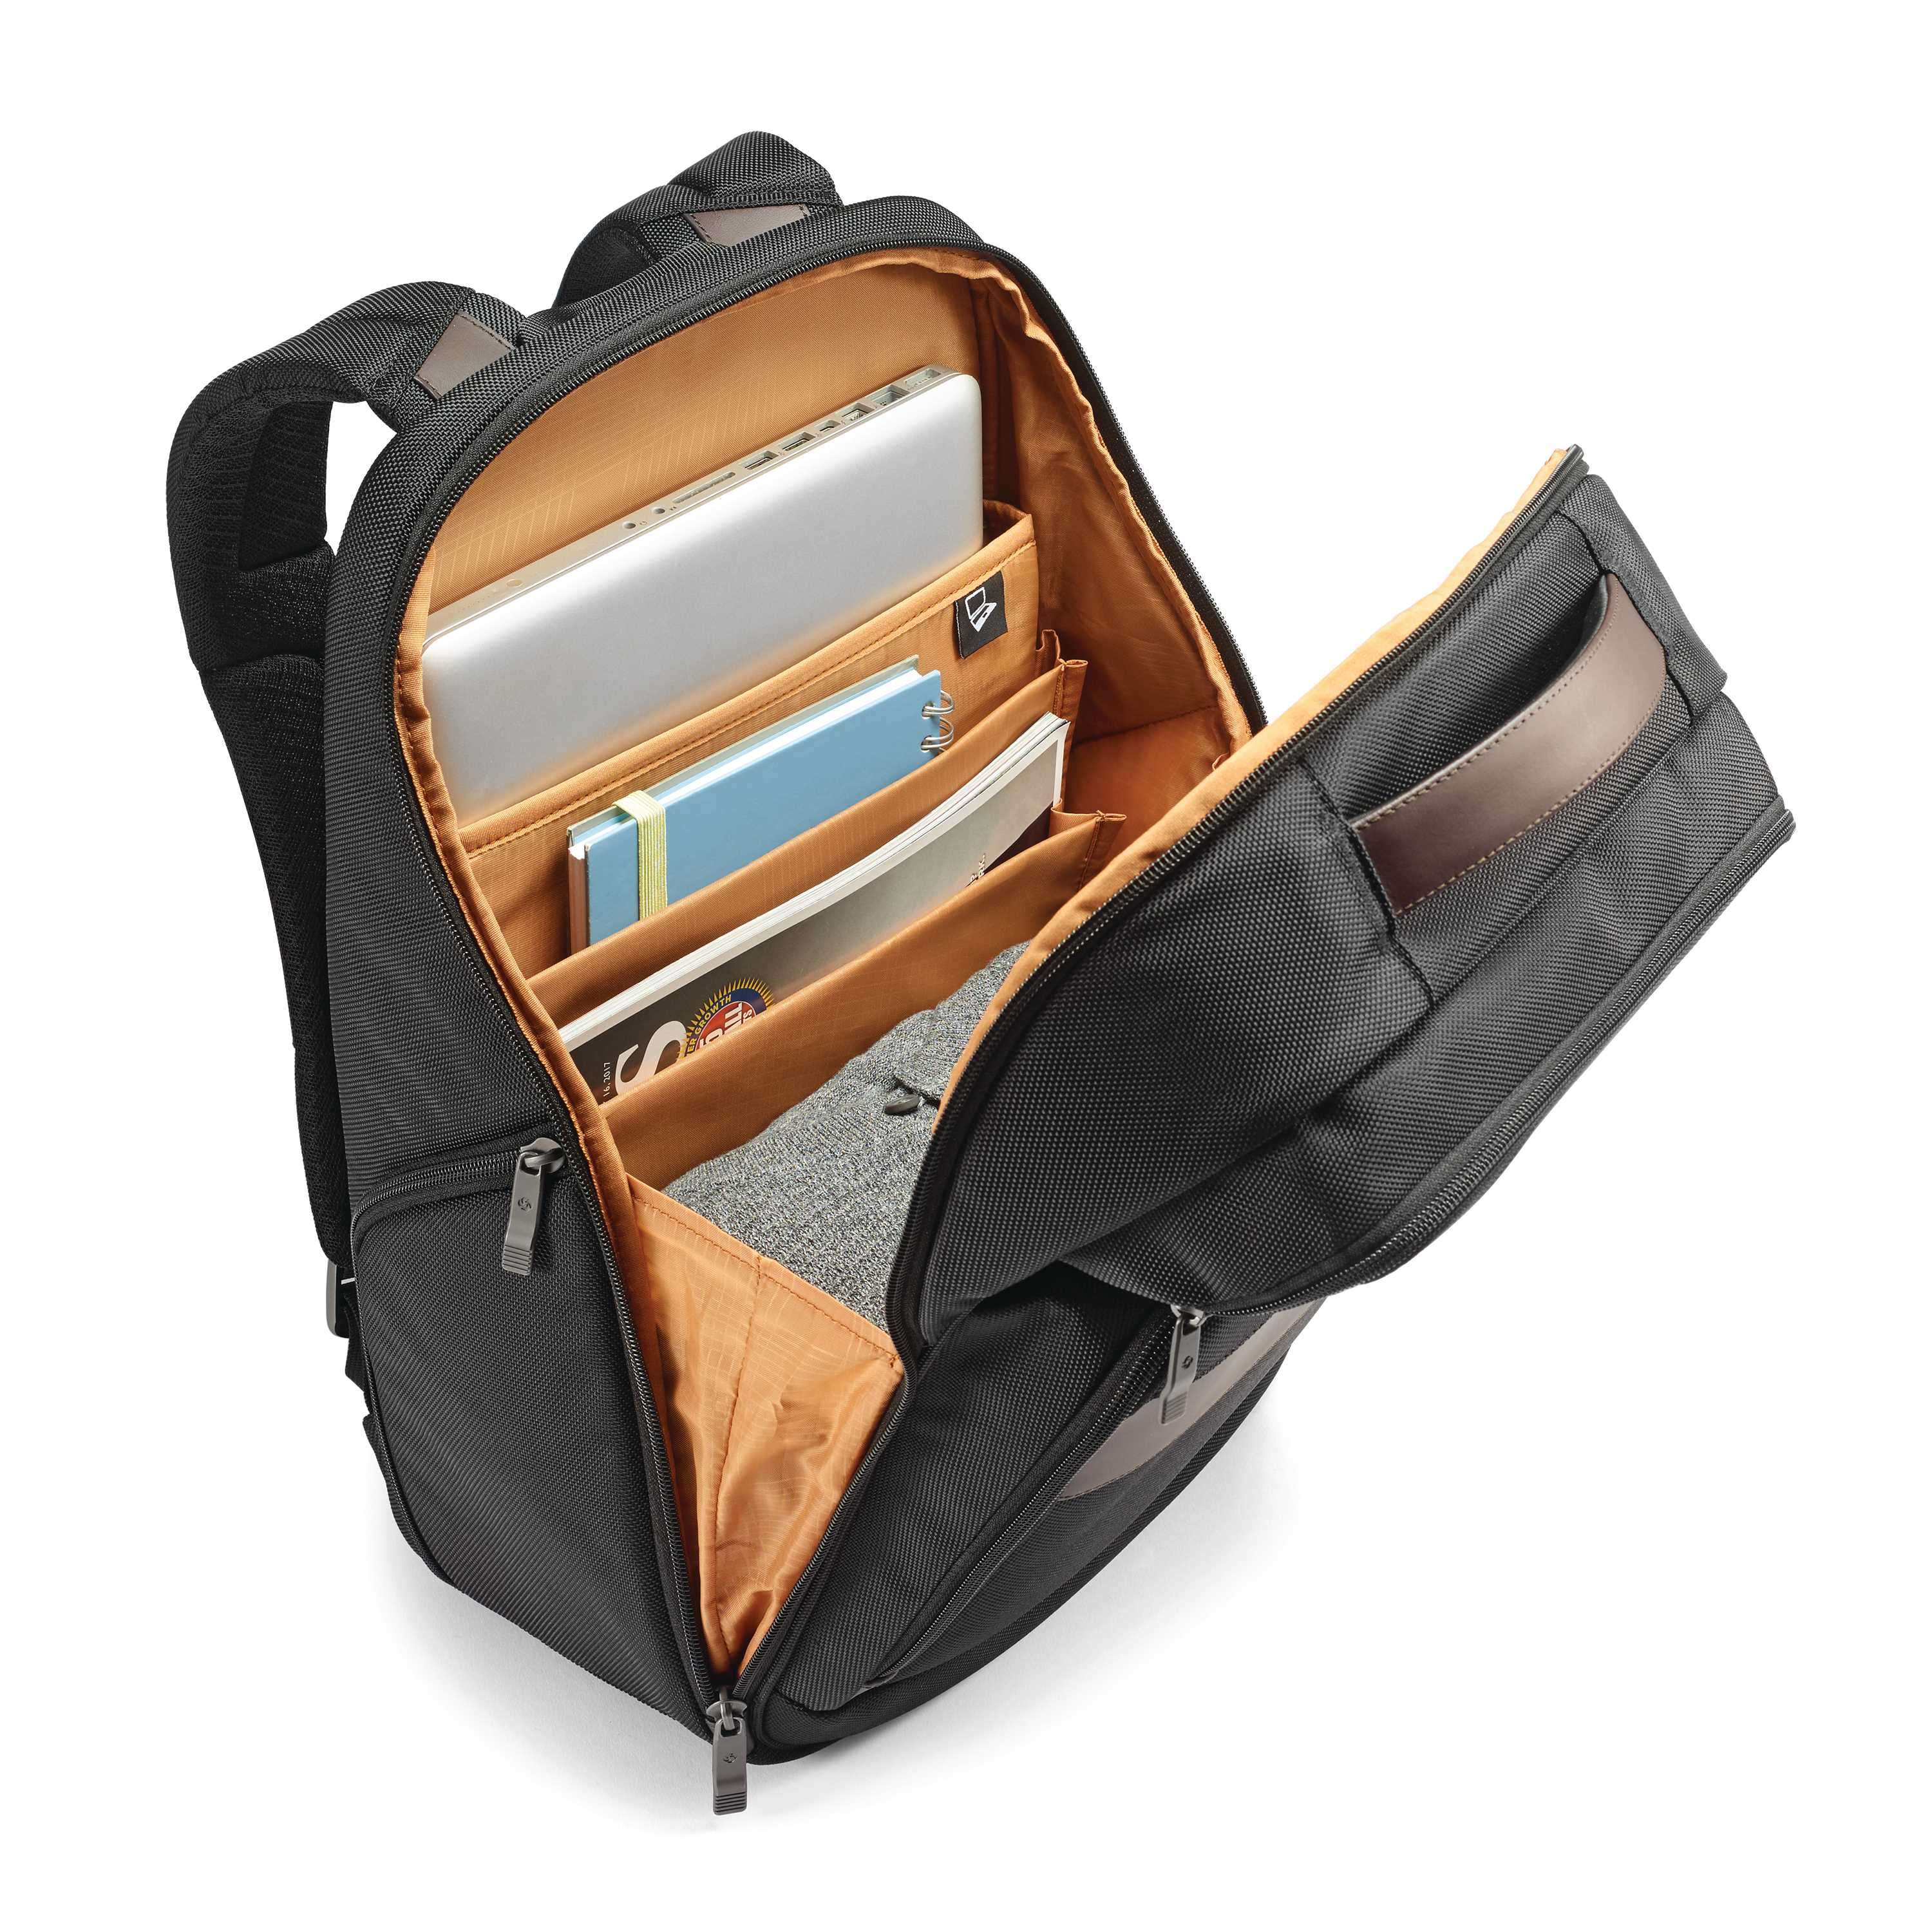 Samsonite-Kombi-Large-Backpack thumbnail 3